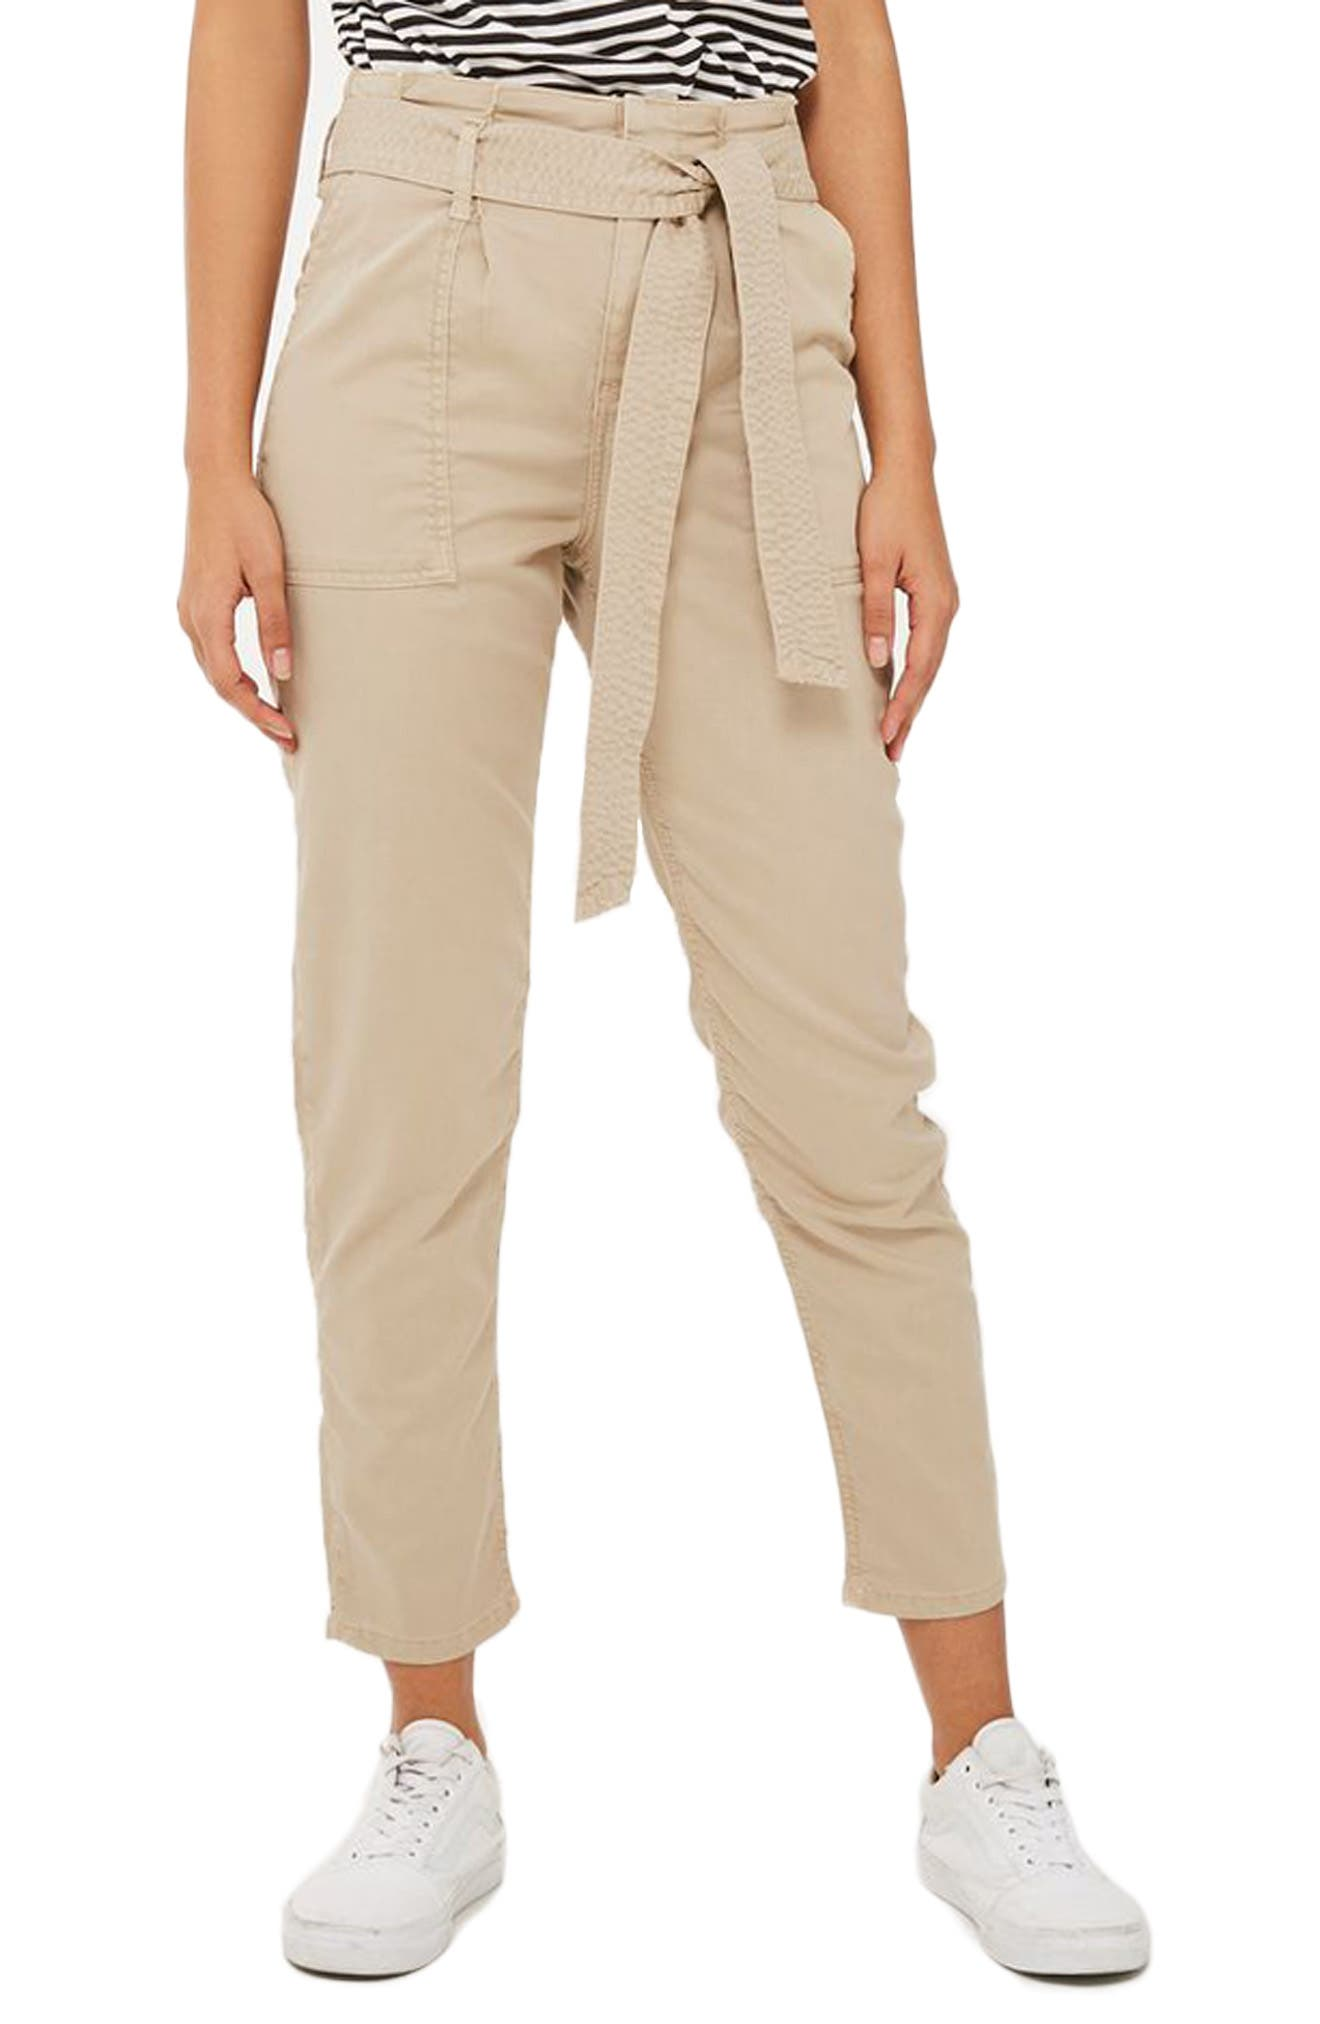 Topshop Paperbag Peg Trousers